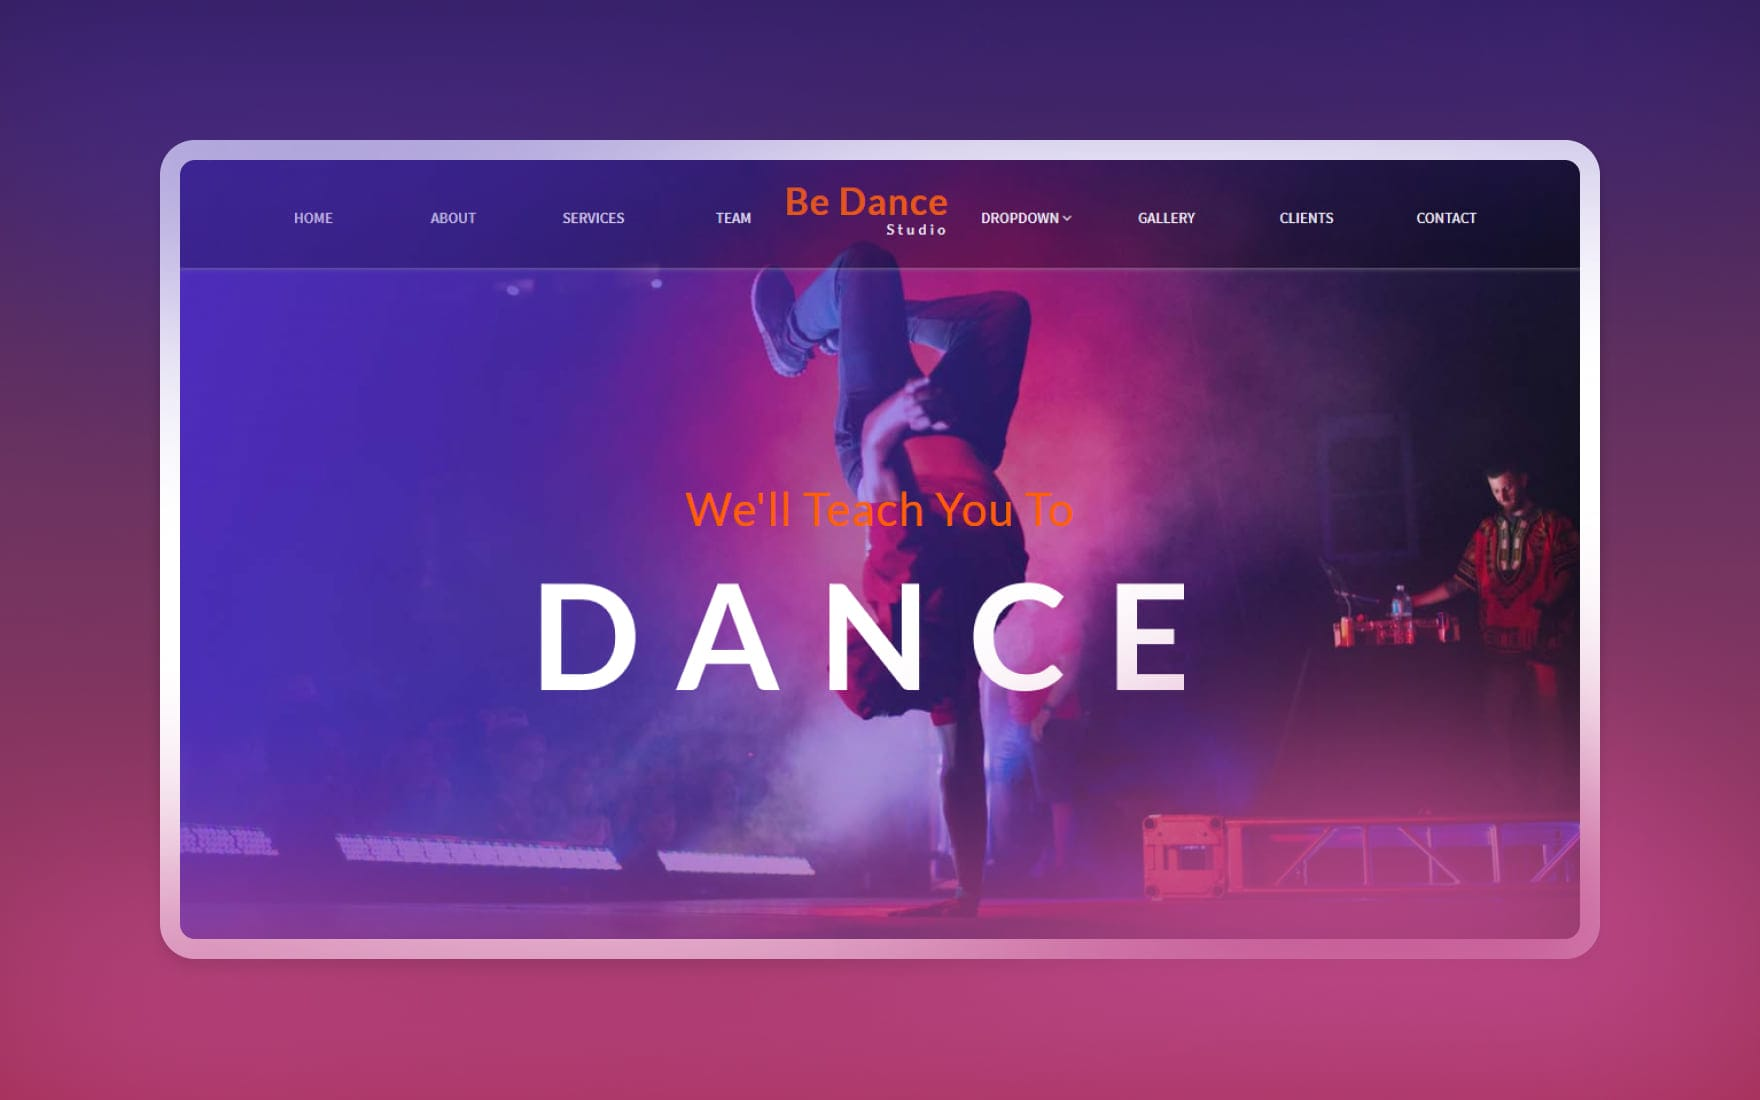 be dance featured image